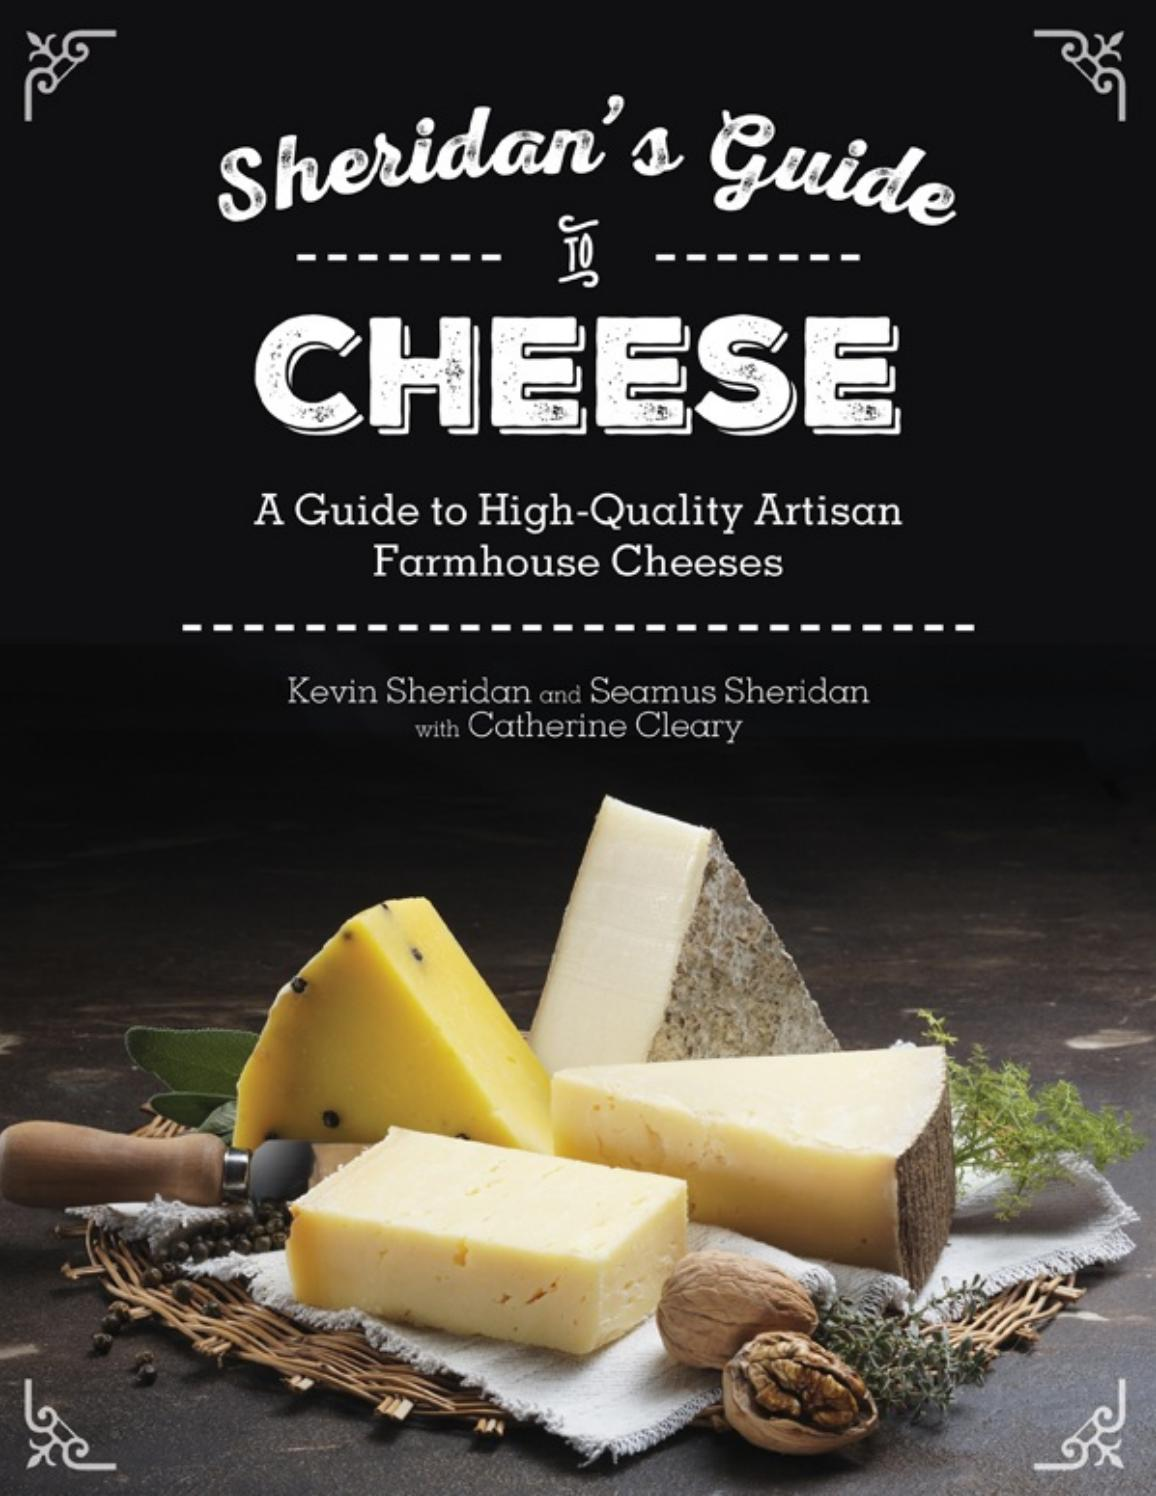 Sheridans Guide To Cheese A Guide To High Quality By Gialink Truc Issuu